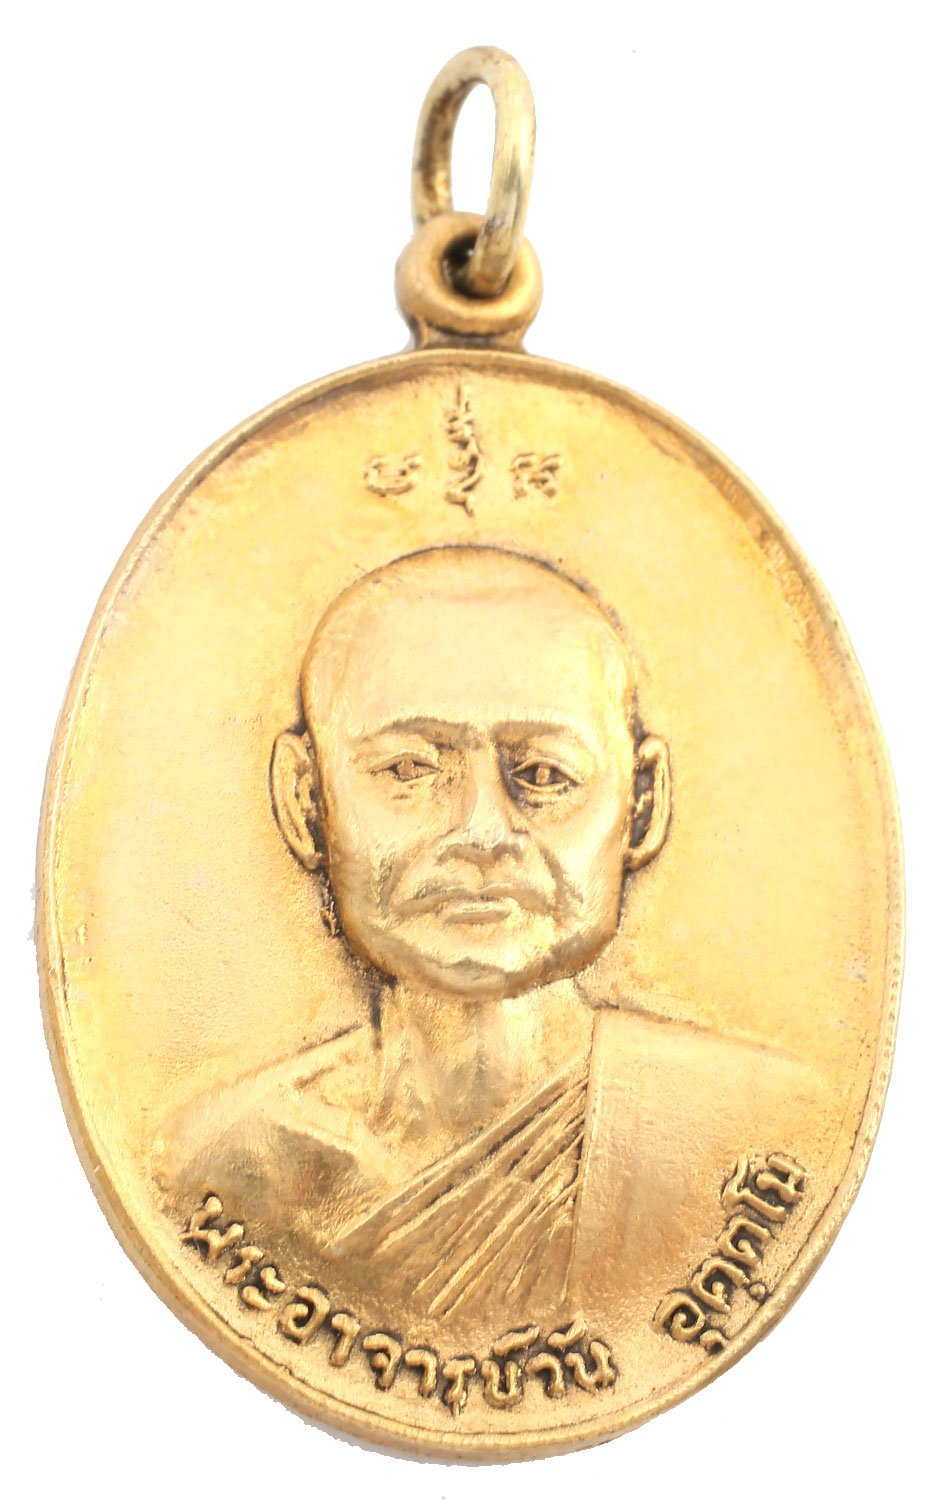 SIAMESE BUDDHIST MONK MEDAL - Fagan Arms